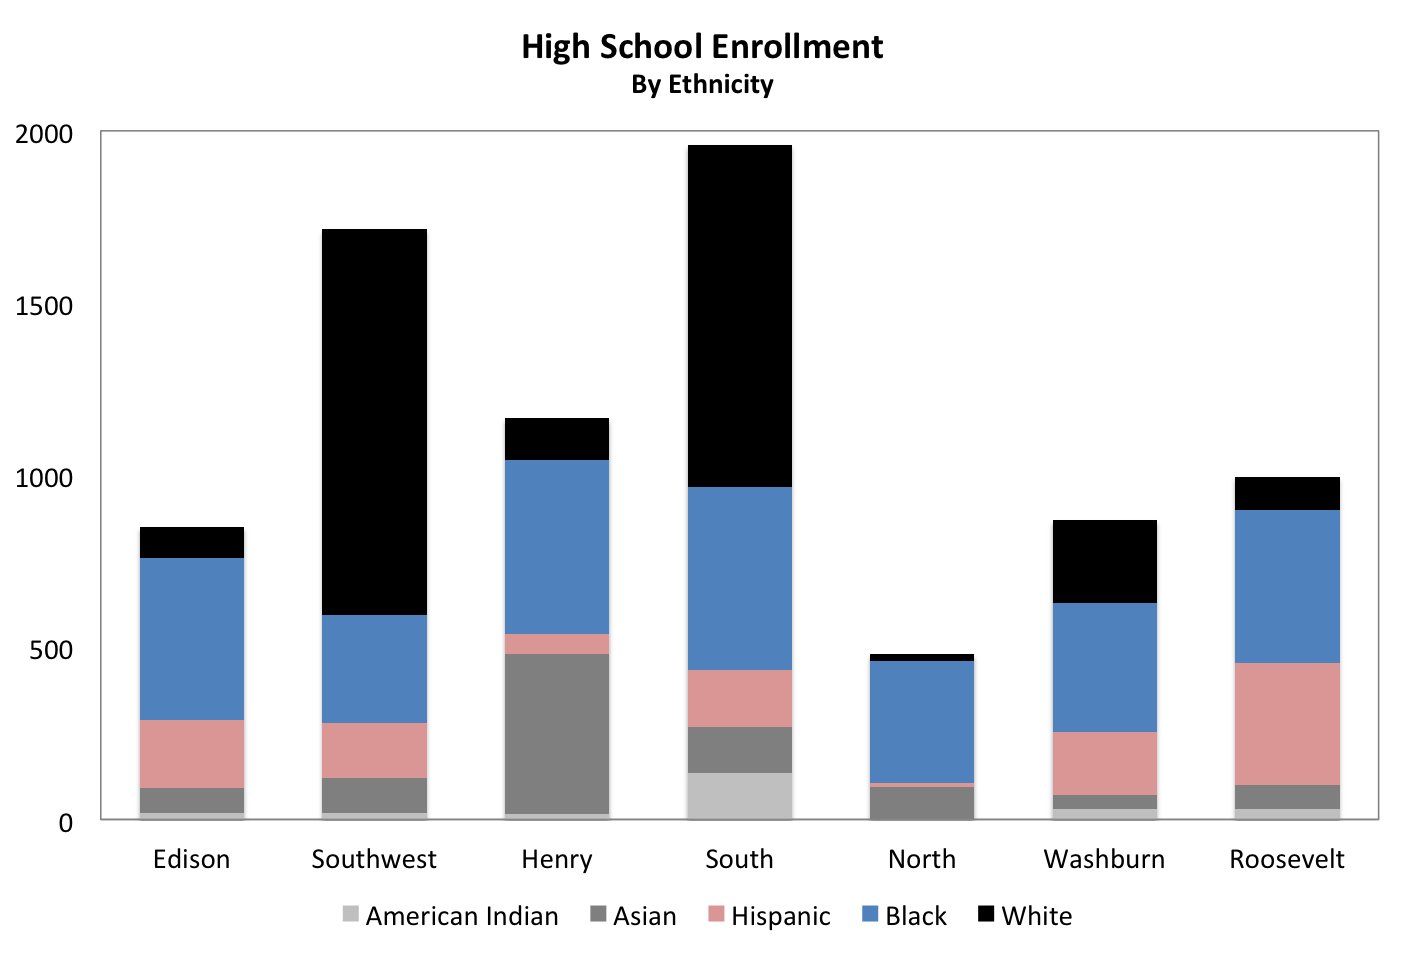 a look at black graduation rates across high schools confirms graduation rates are associated with ethnicity with the exception of edison